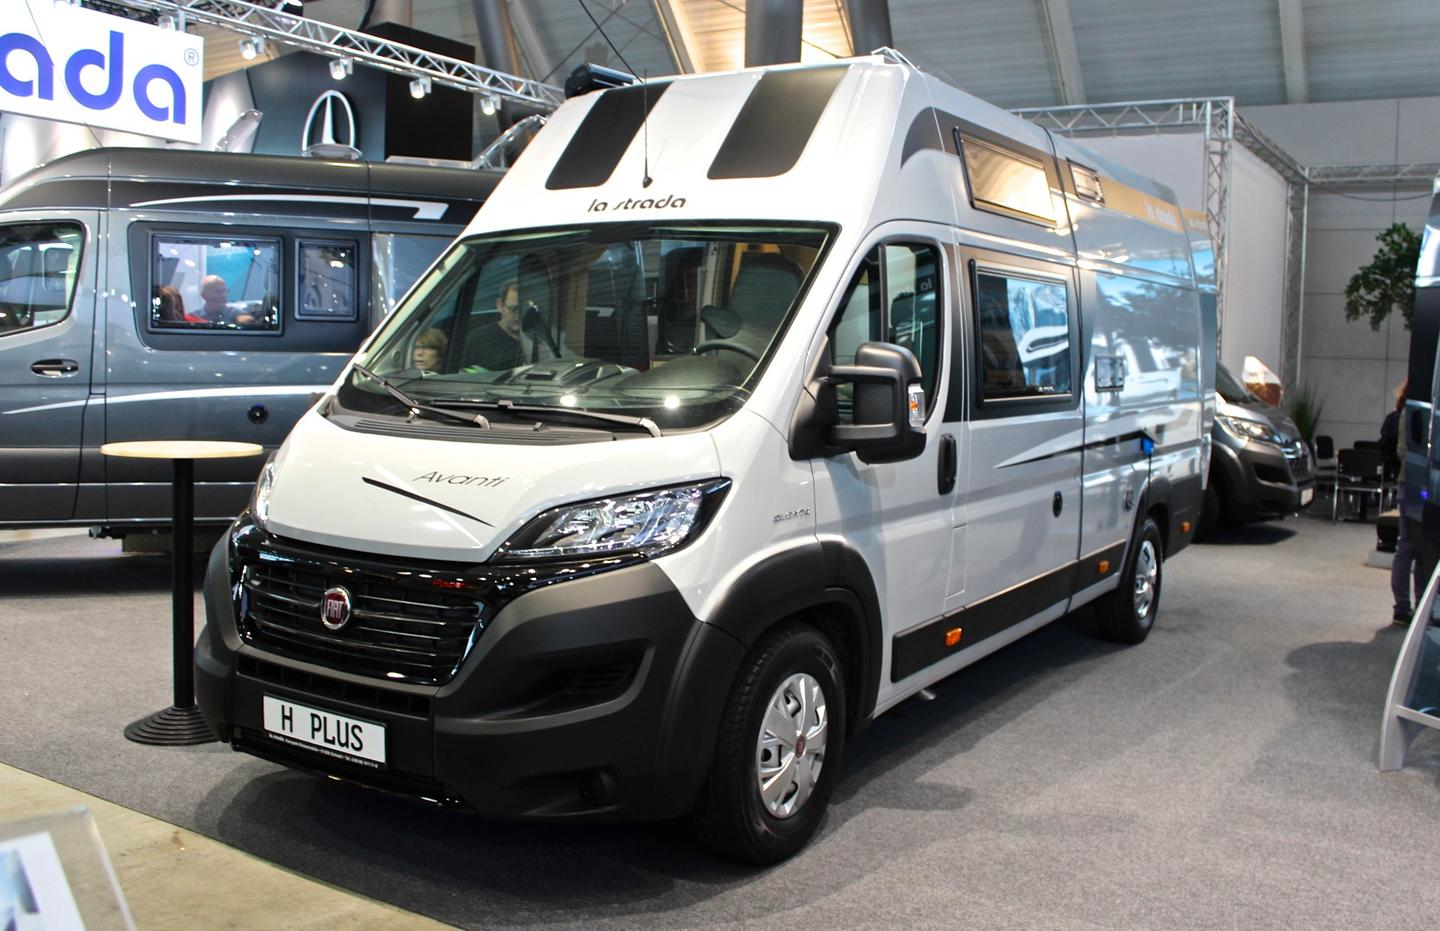 The La Strada Avanti H Plus starts at €57,213, but this show model was optioned up with all kinds of equipment, including a more powerful engine, navigation system, 100 watts of solar and awning, pricing at €81,534